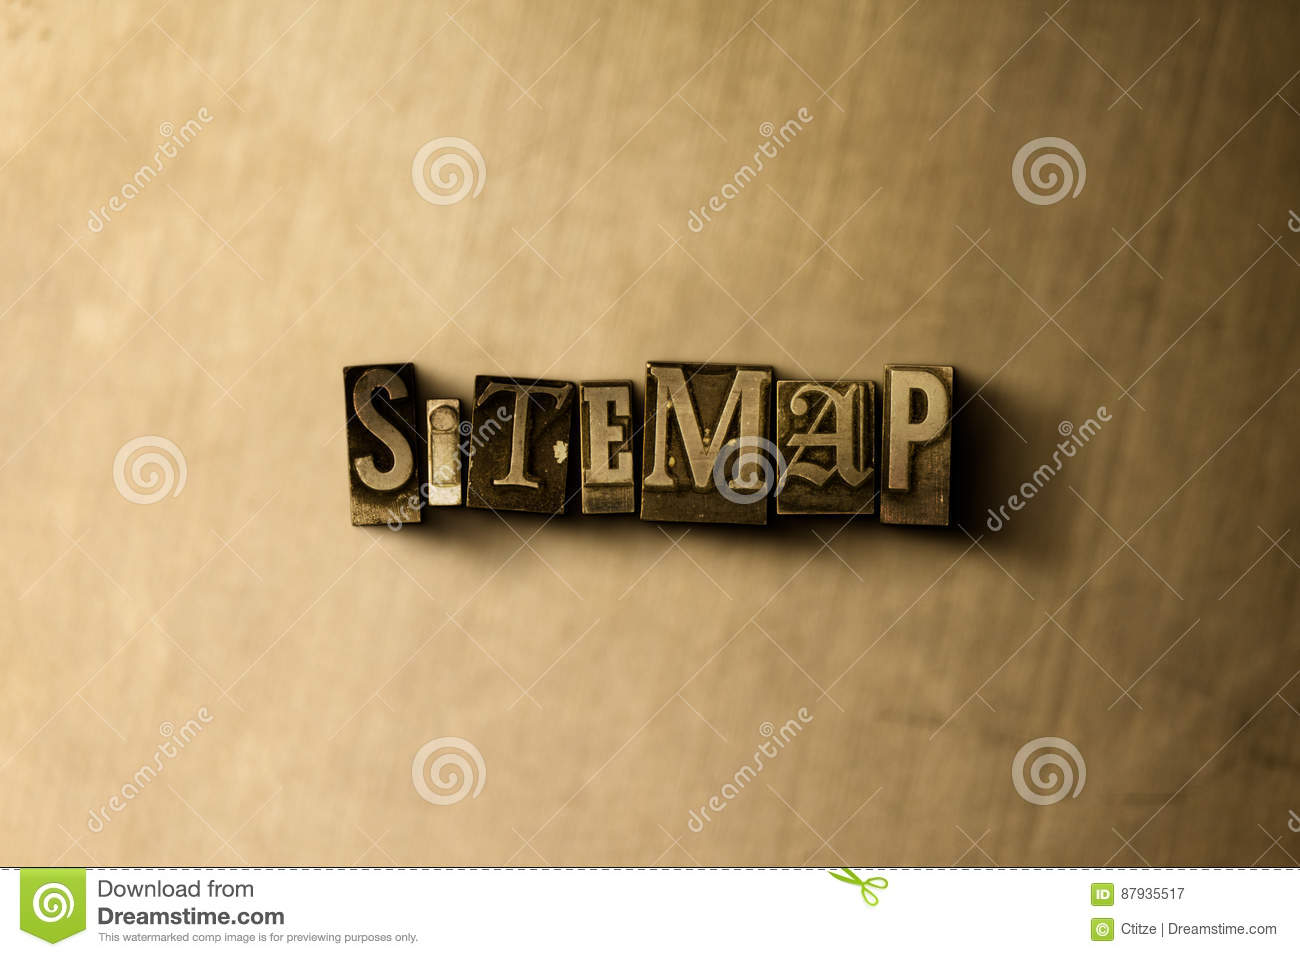 SITEMAP - close-up of grungy vintage typeset word on metal backdrop